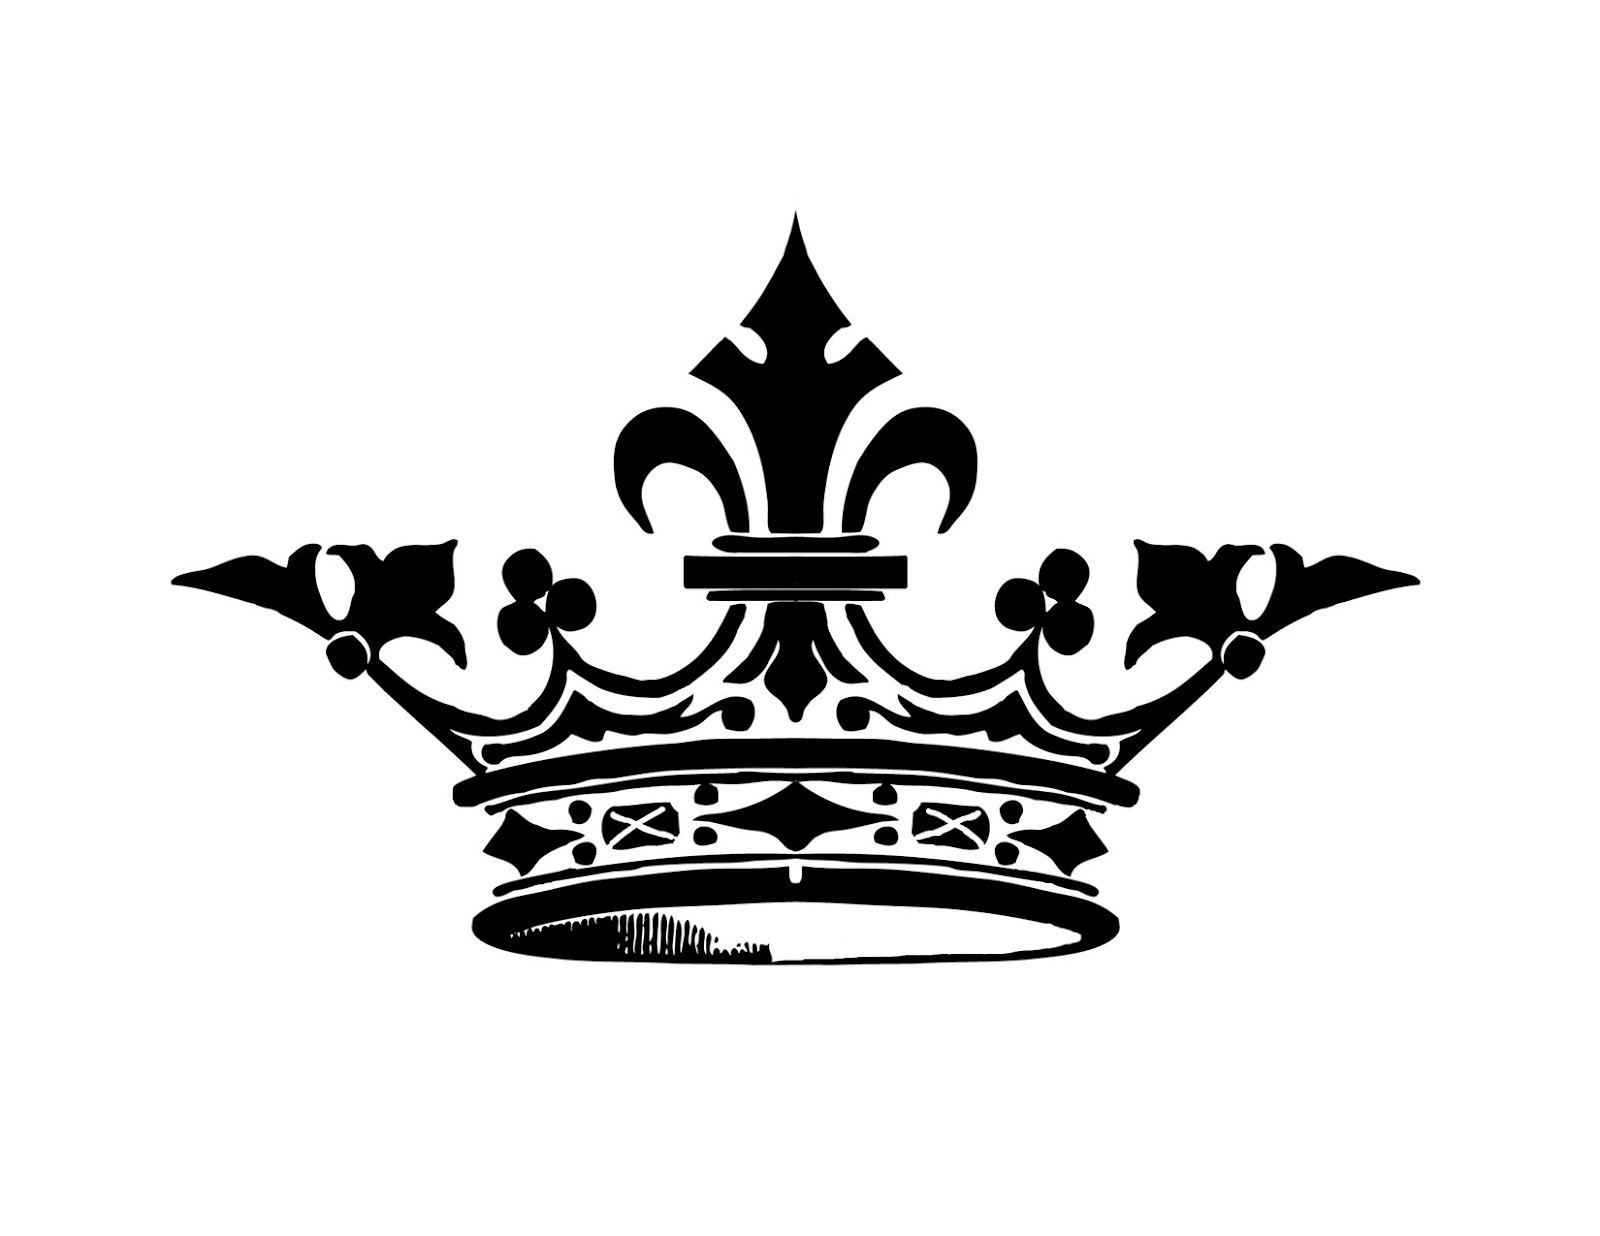 1600x1236 Crown Silhouette Graphicsfairysm Free Images